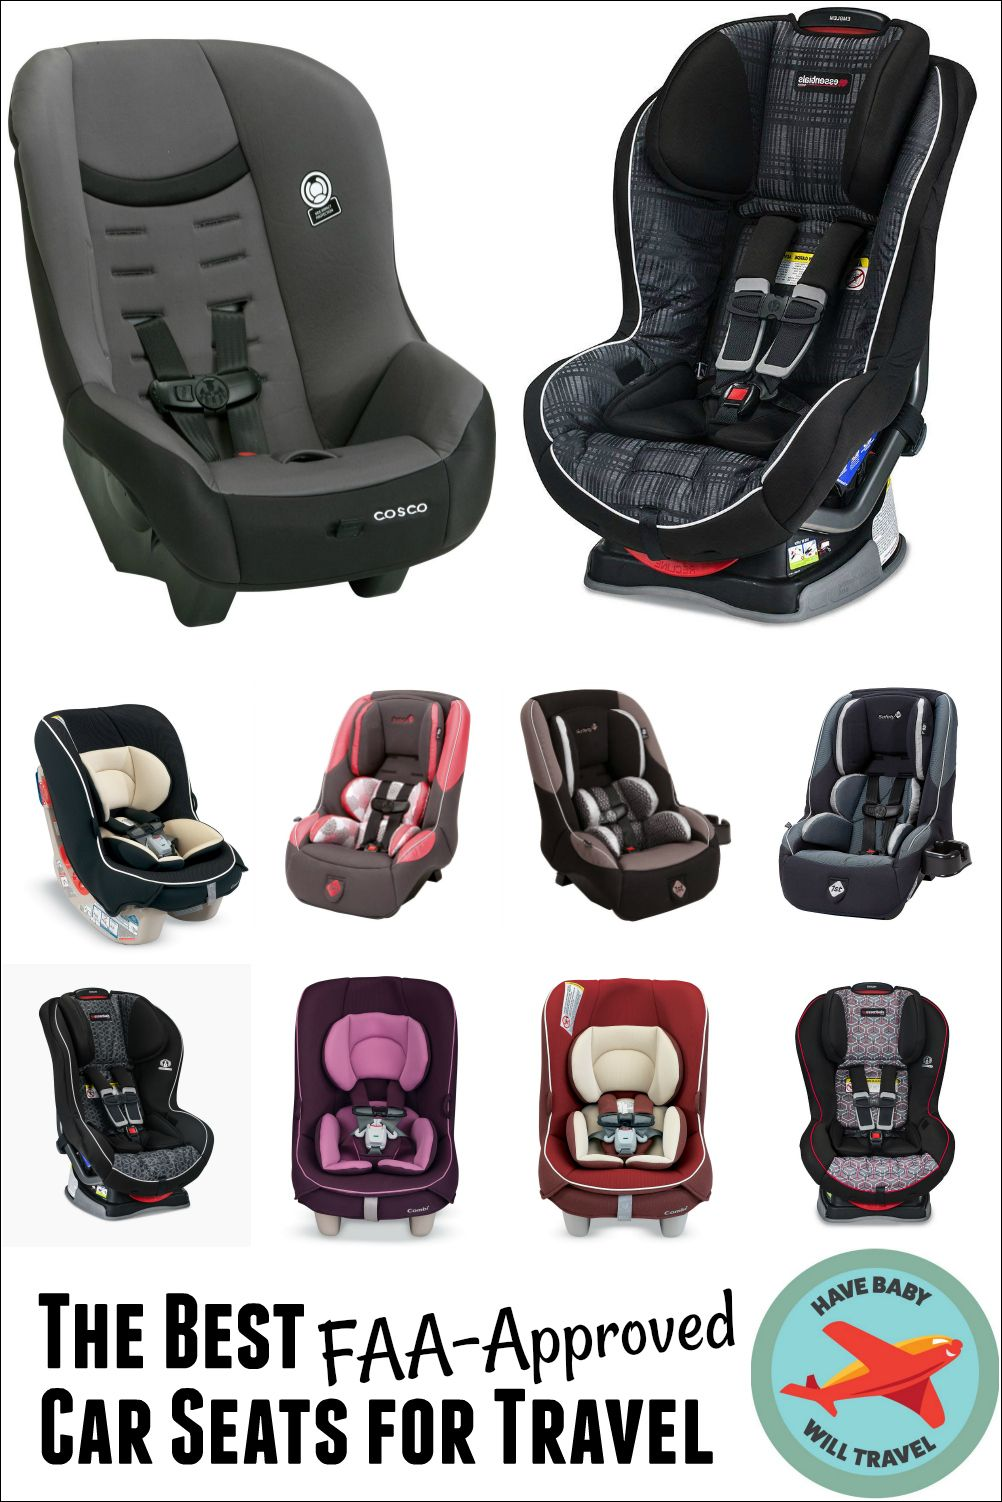 Best FAAApproved Car Seats for Travel Baby travel gear